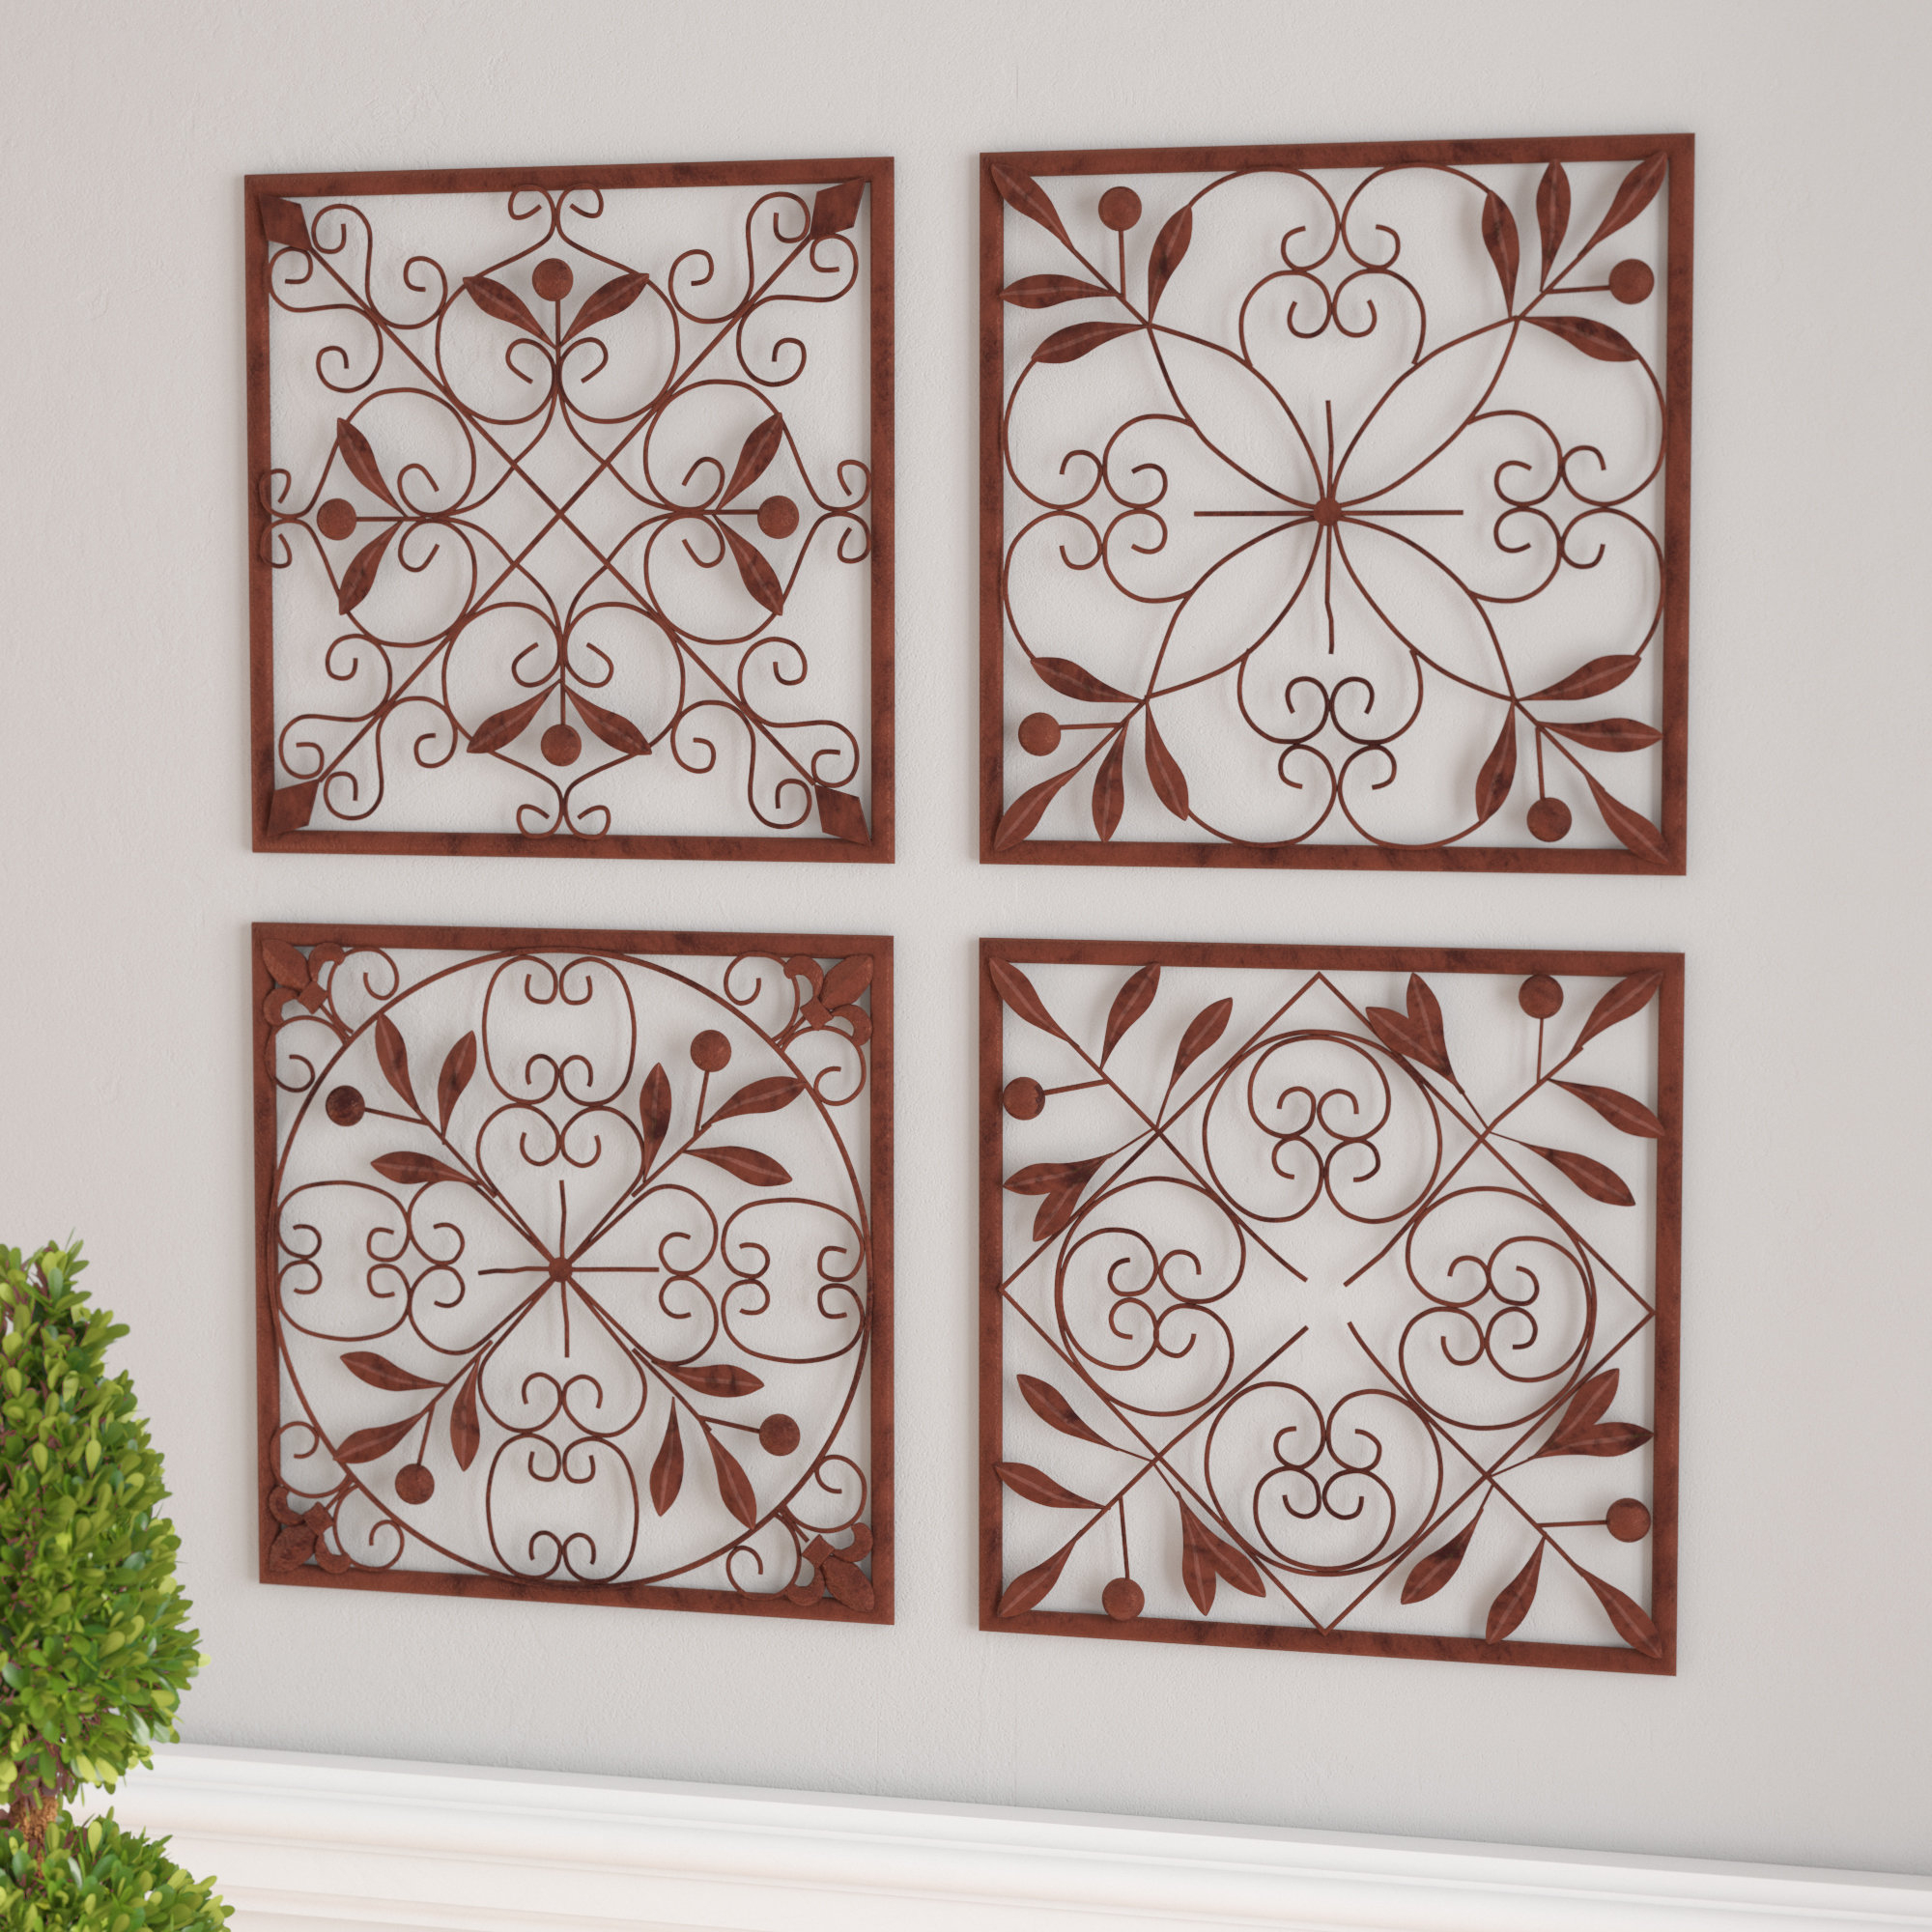 2 Piece Wall Decor Set | Wayfair for 2 Piece Starburst Wall Decor Sets (Image 5 of 30)